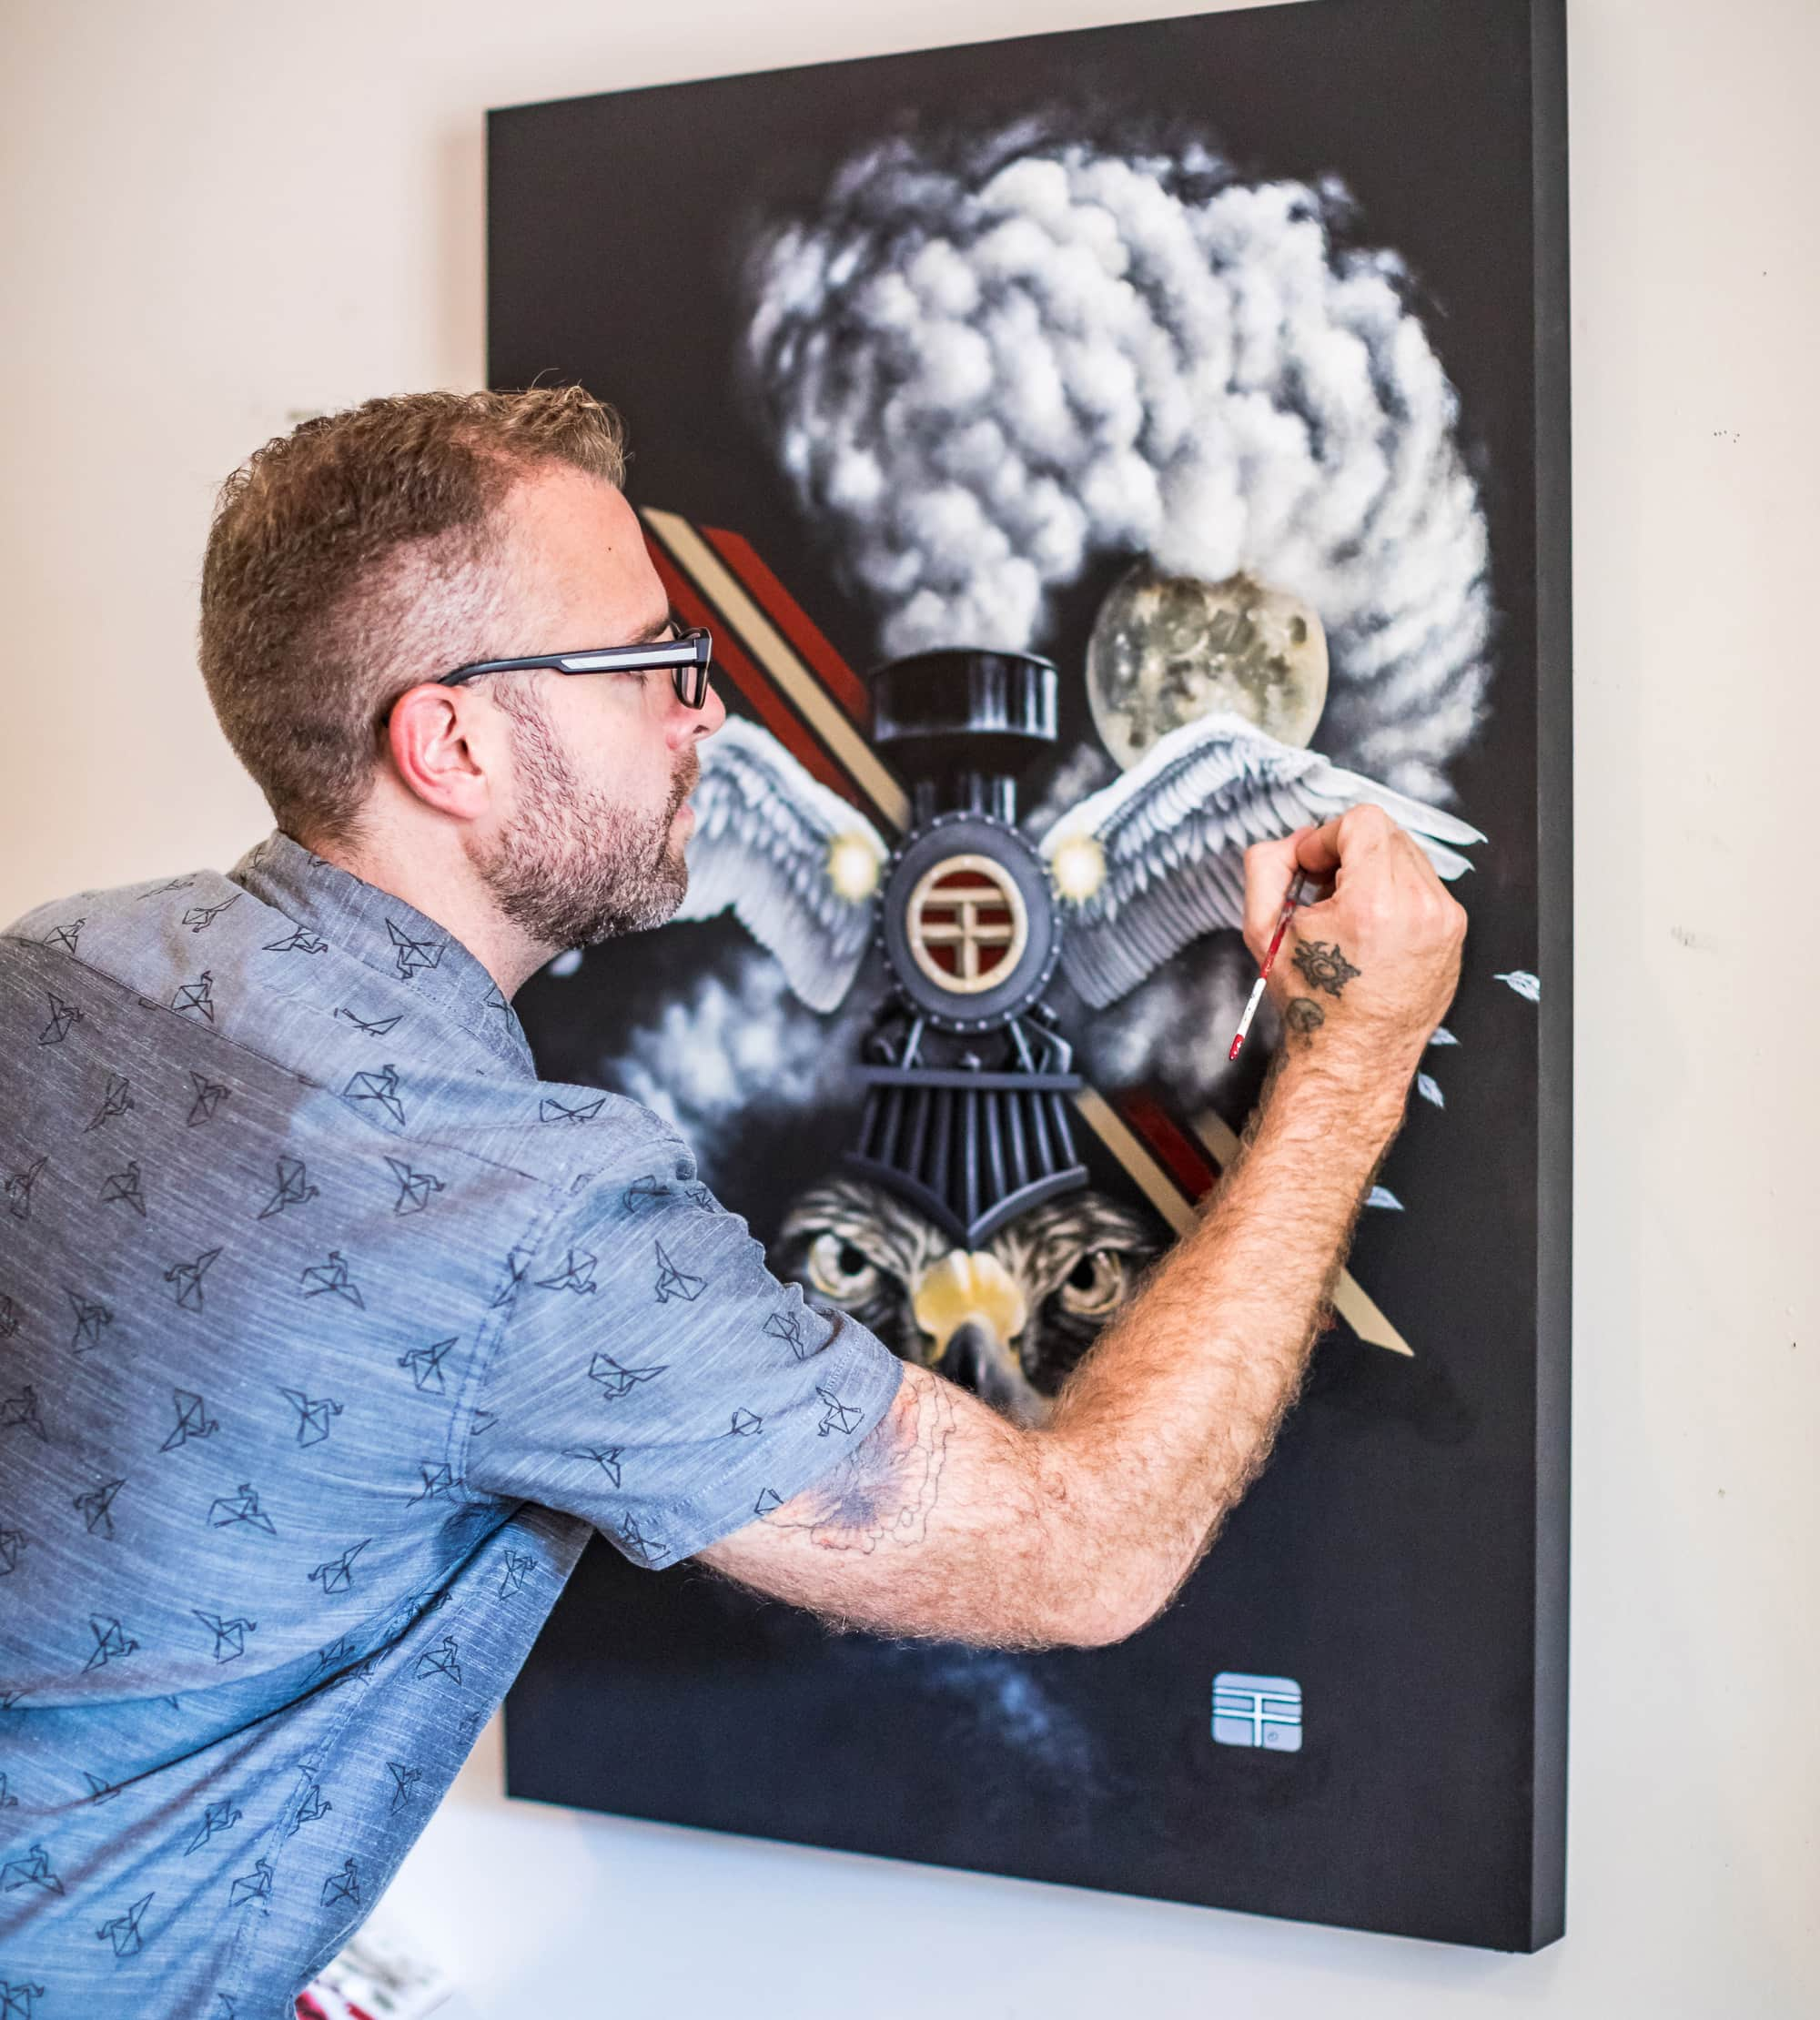 Artist Thomas Turner painting the work that was inspiration for his printed t-shirt.